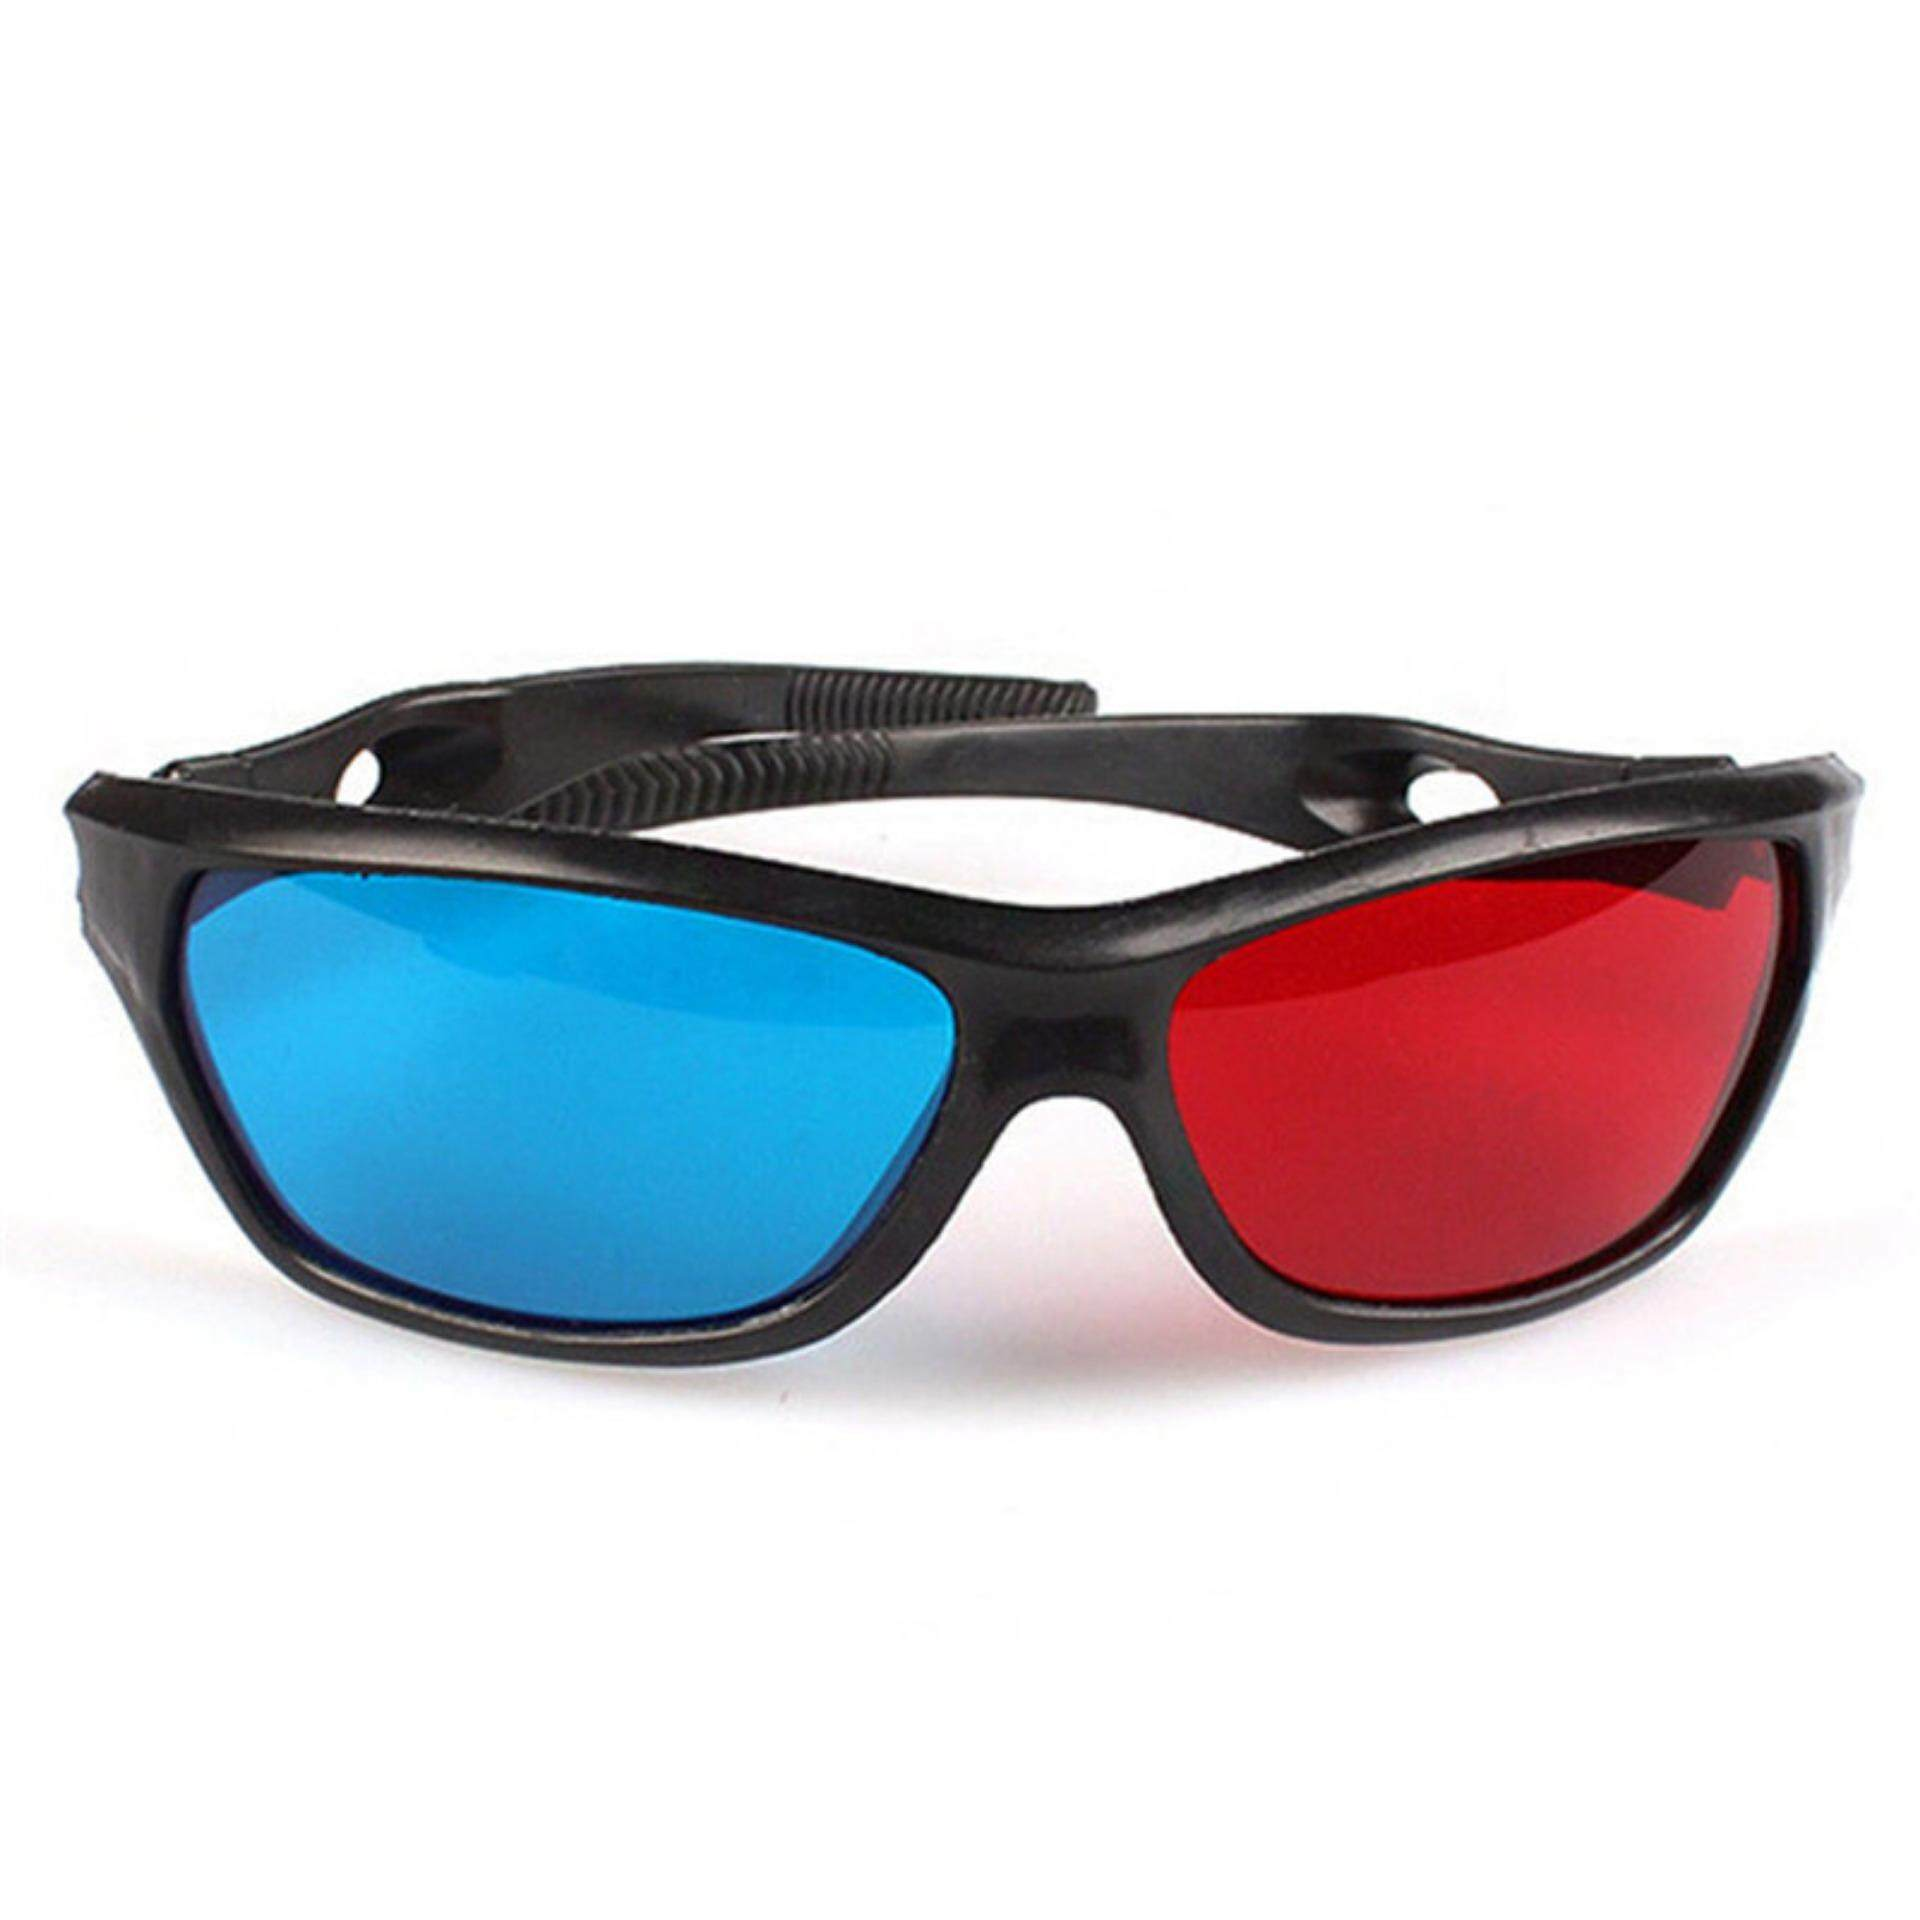 Black Frame Red Blue 3d Glasses For Dimensional Anaglyph Movie Game Dvd By Zozo Store.